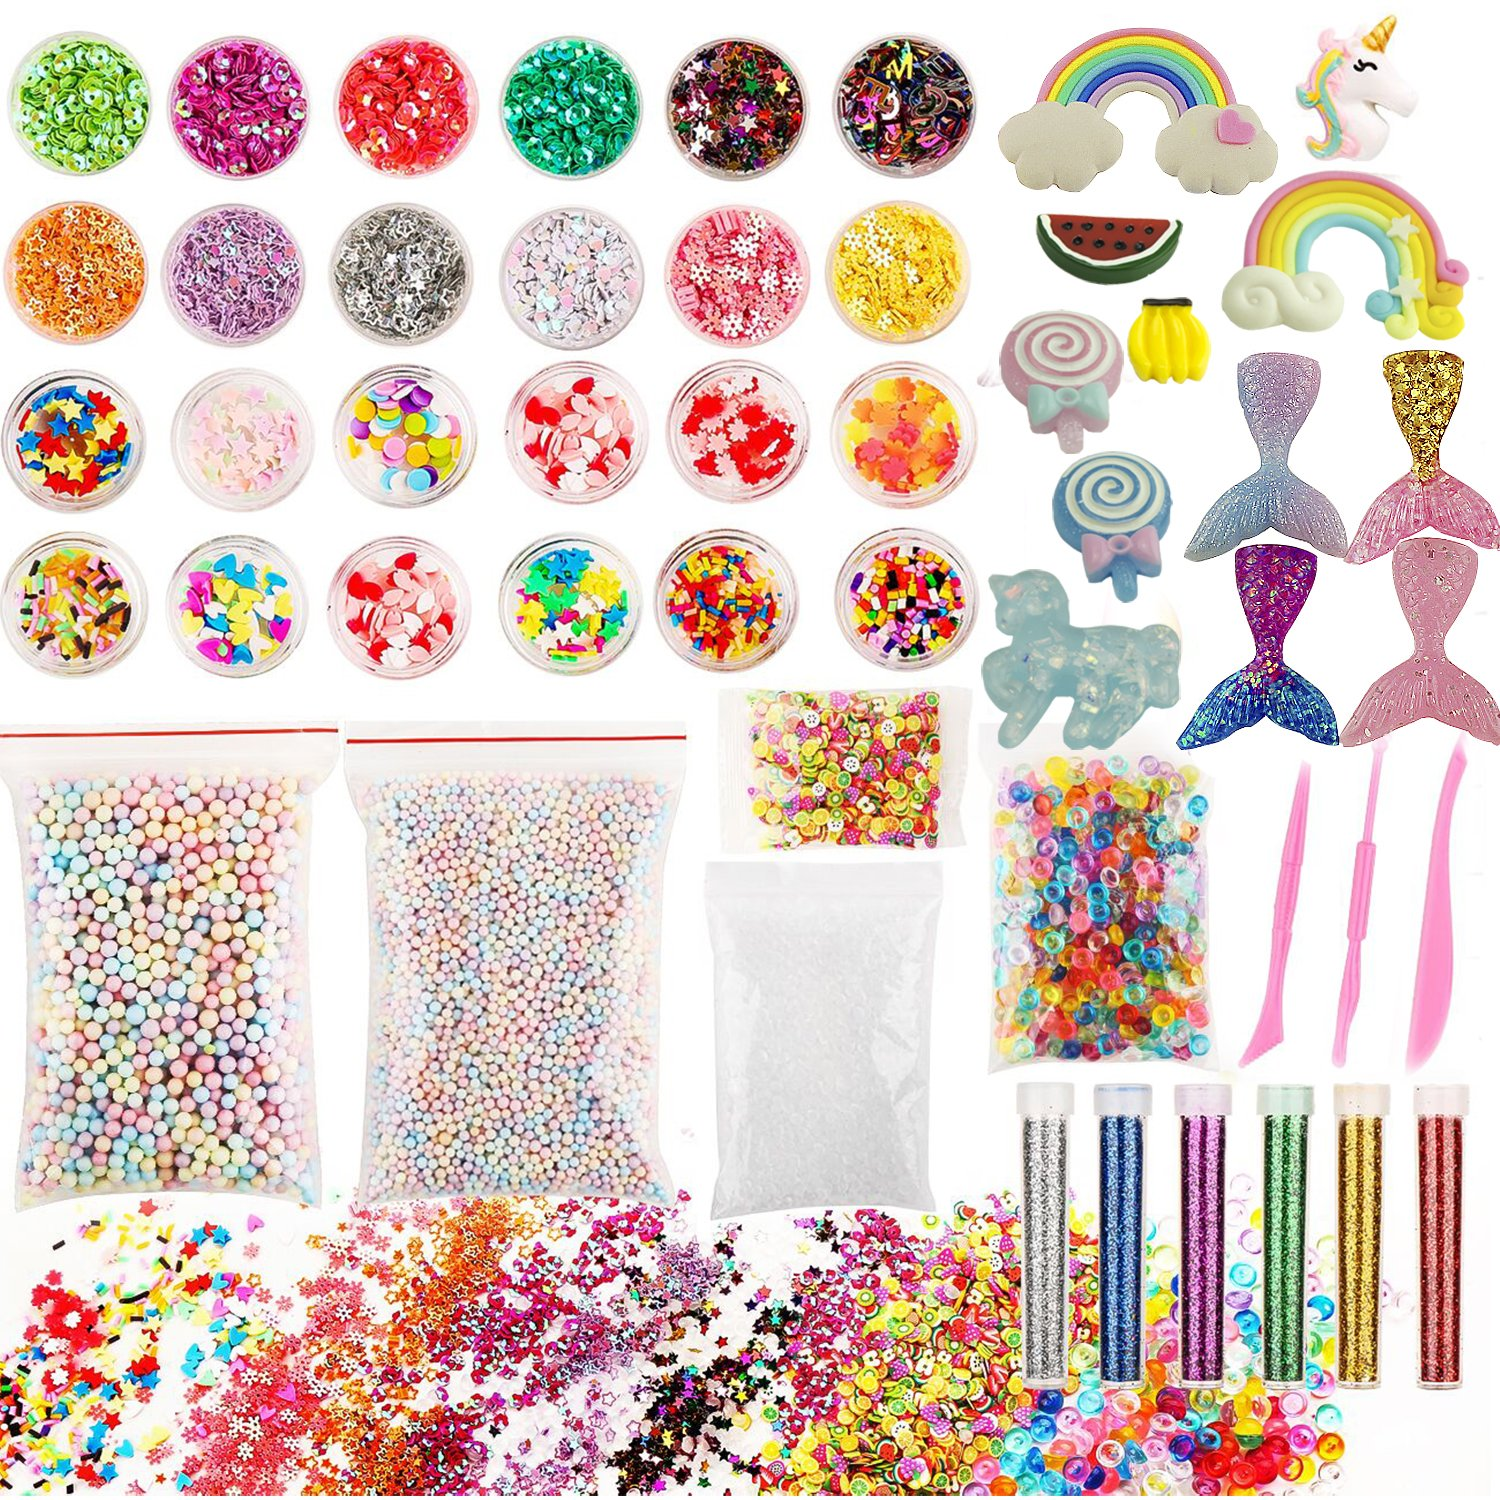 Slime Supplies kit, 50 Pack Slime Kits Include Slime Charms Fishbowl Beads, Pearl, Floam Beads, Glitter Jars, Confetti, Slime Tools, DIY Art Craft for Homemade Slime US Beads Supplies